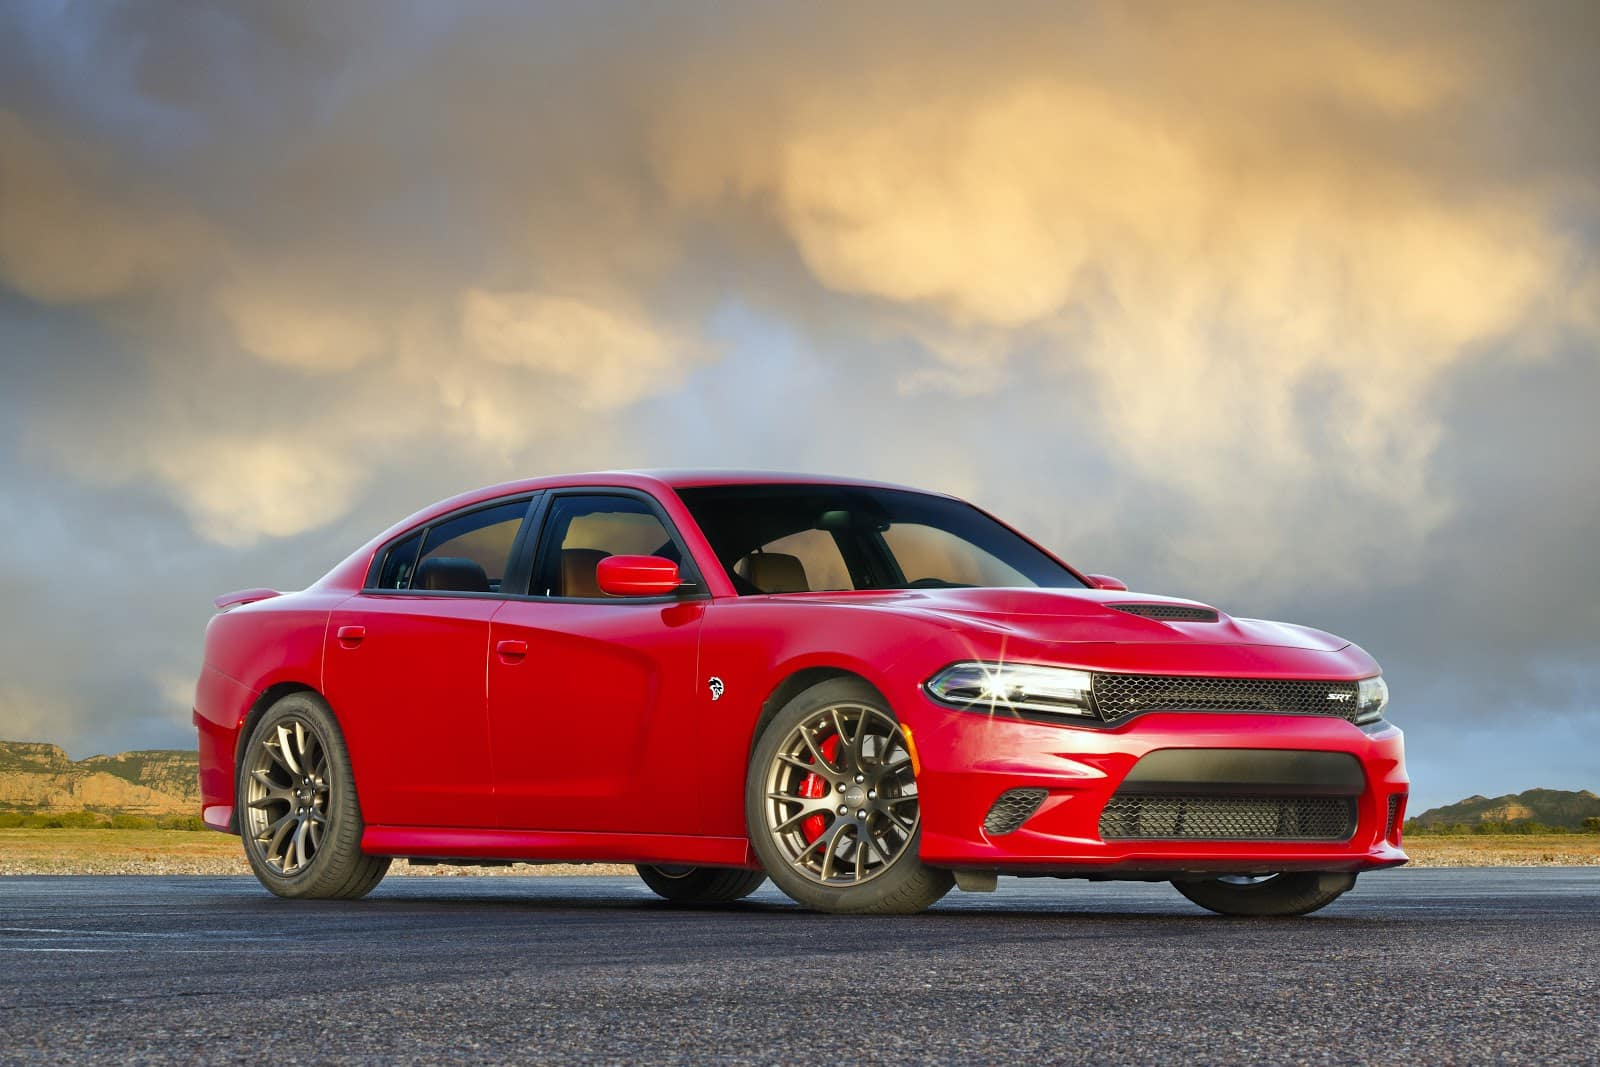 2019 Red Dodge Charger parked sideways on asphalt with sky in background